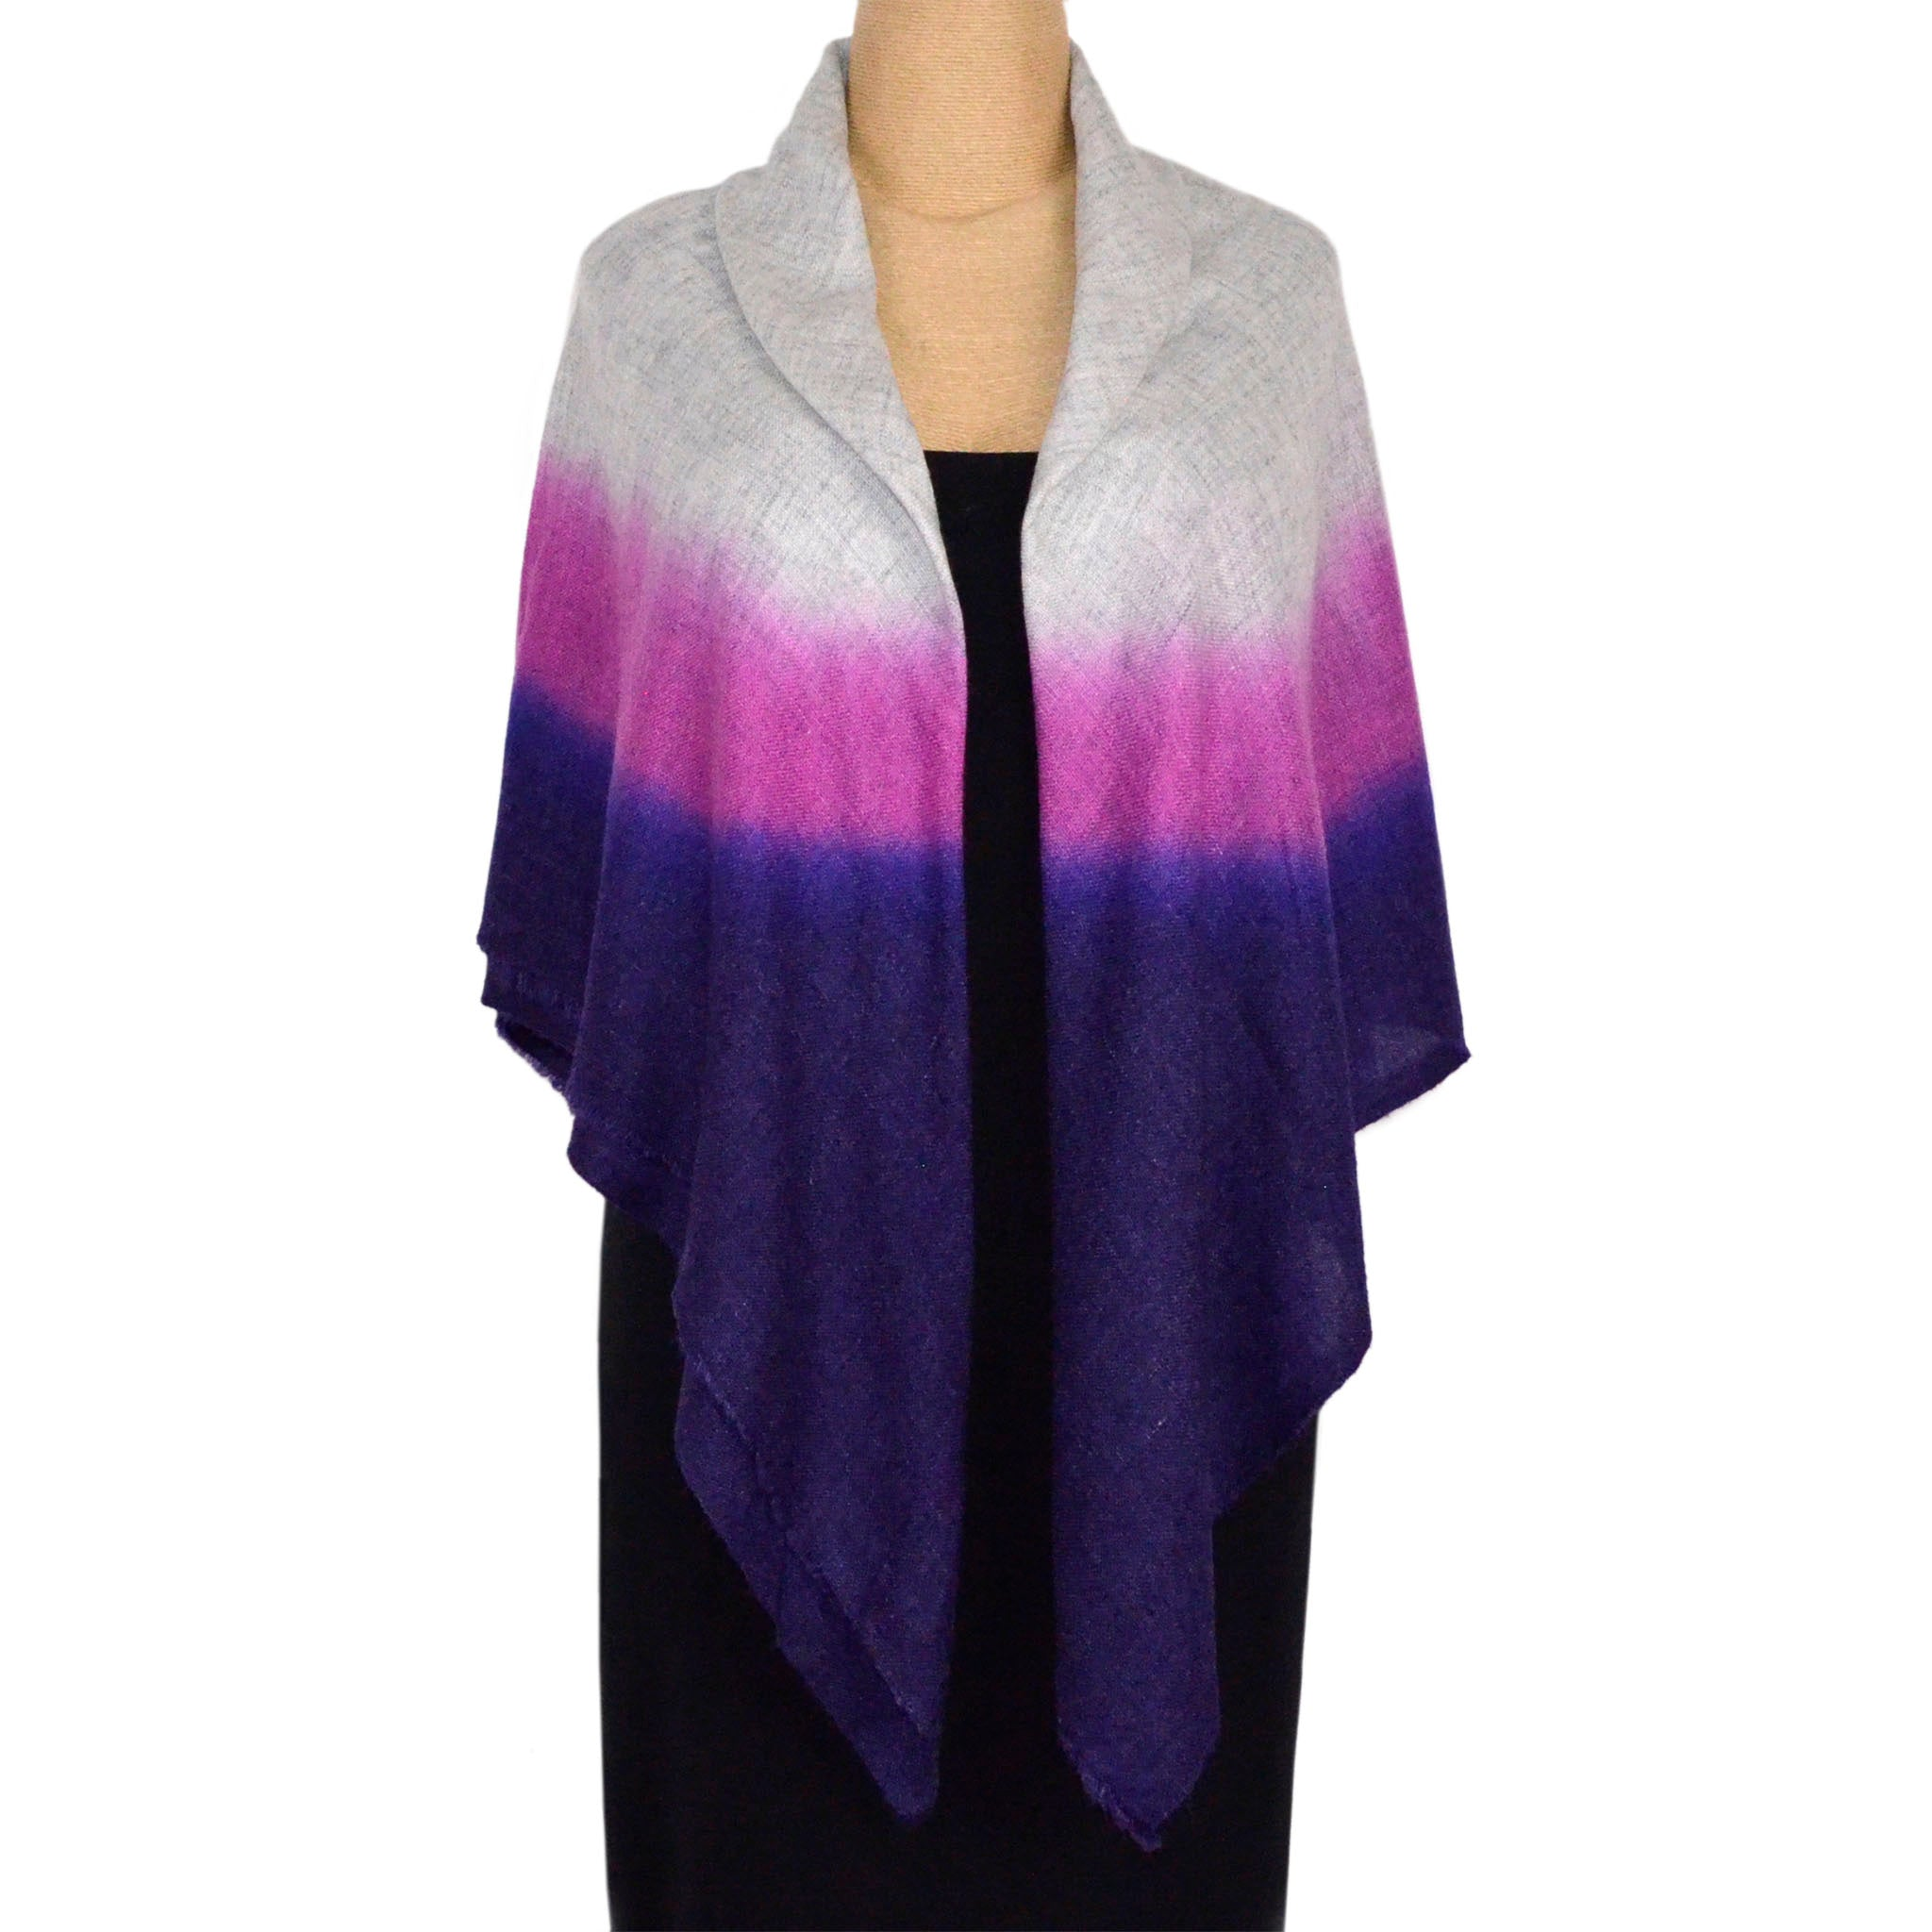 Kala Designs Scarf/Shawl, Cashmere, Hand Painted, Ombre Purple